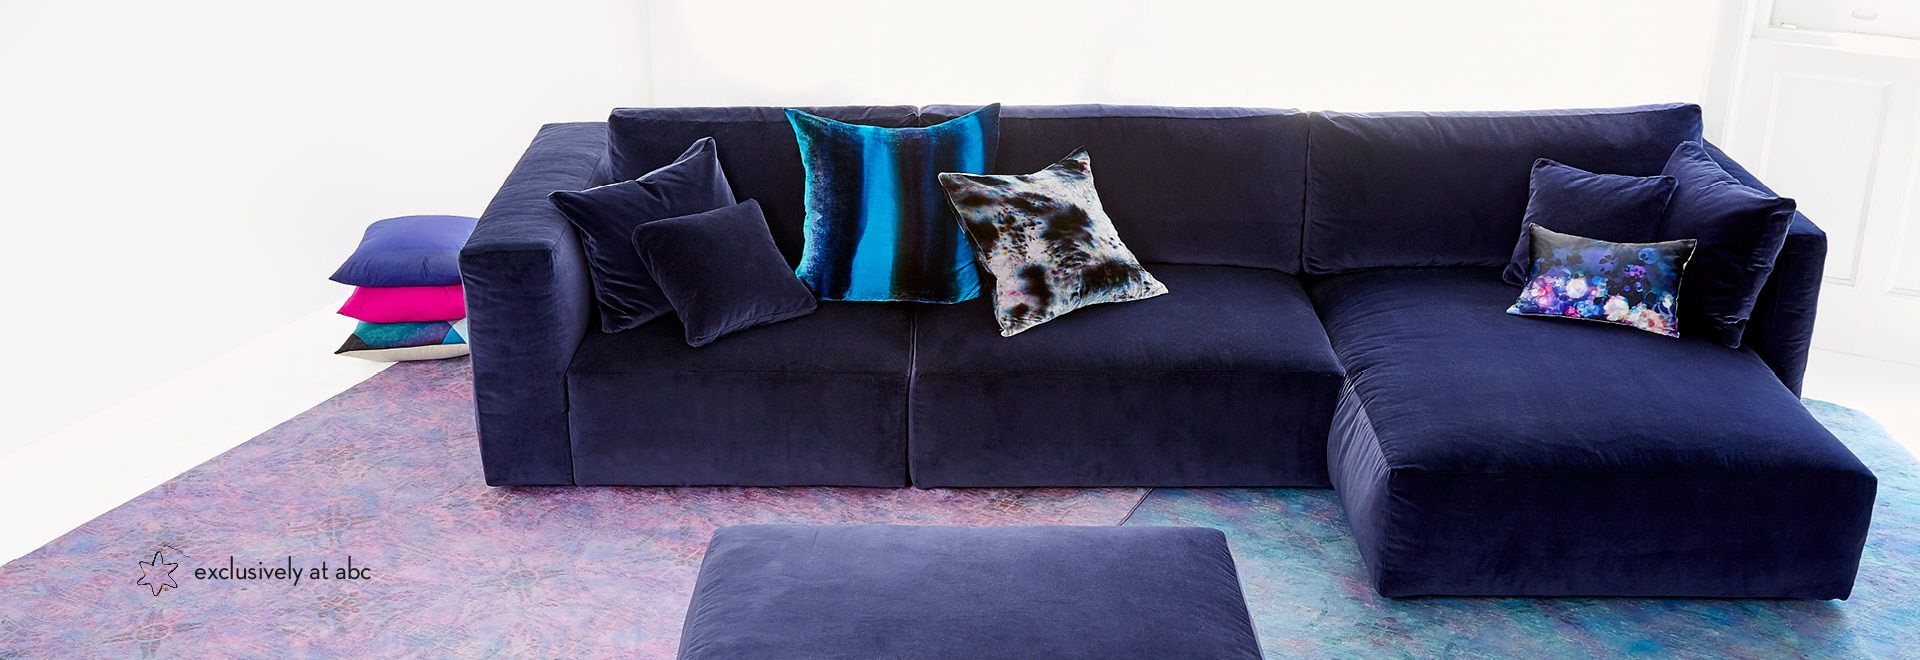 Find modern sectional sofas u piece sectionals at abc home for